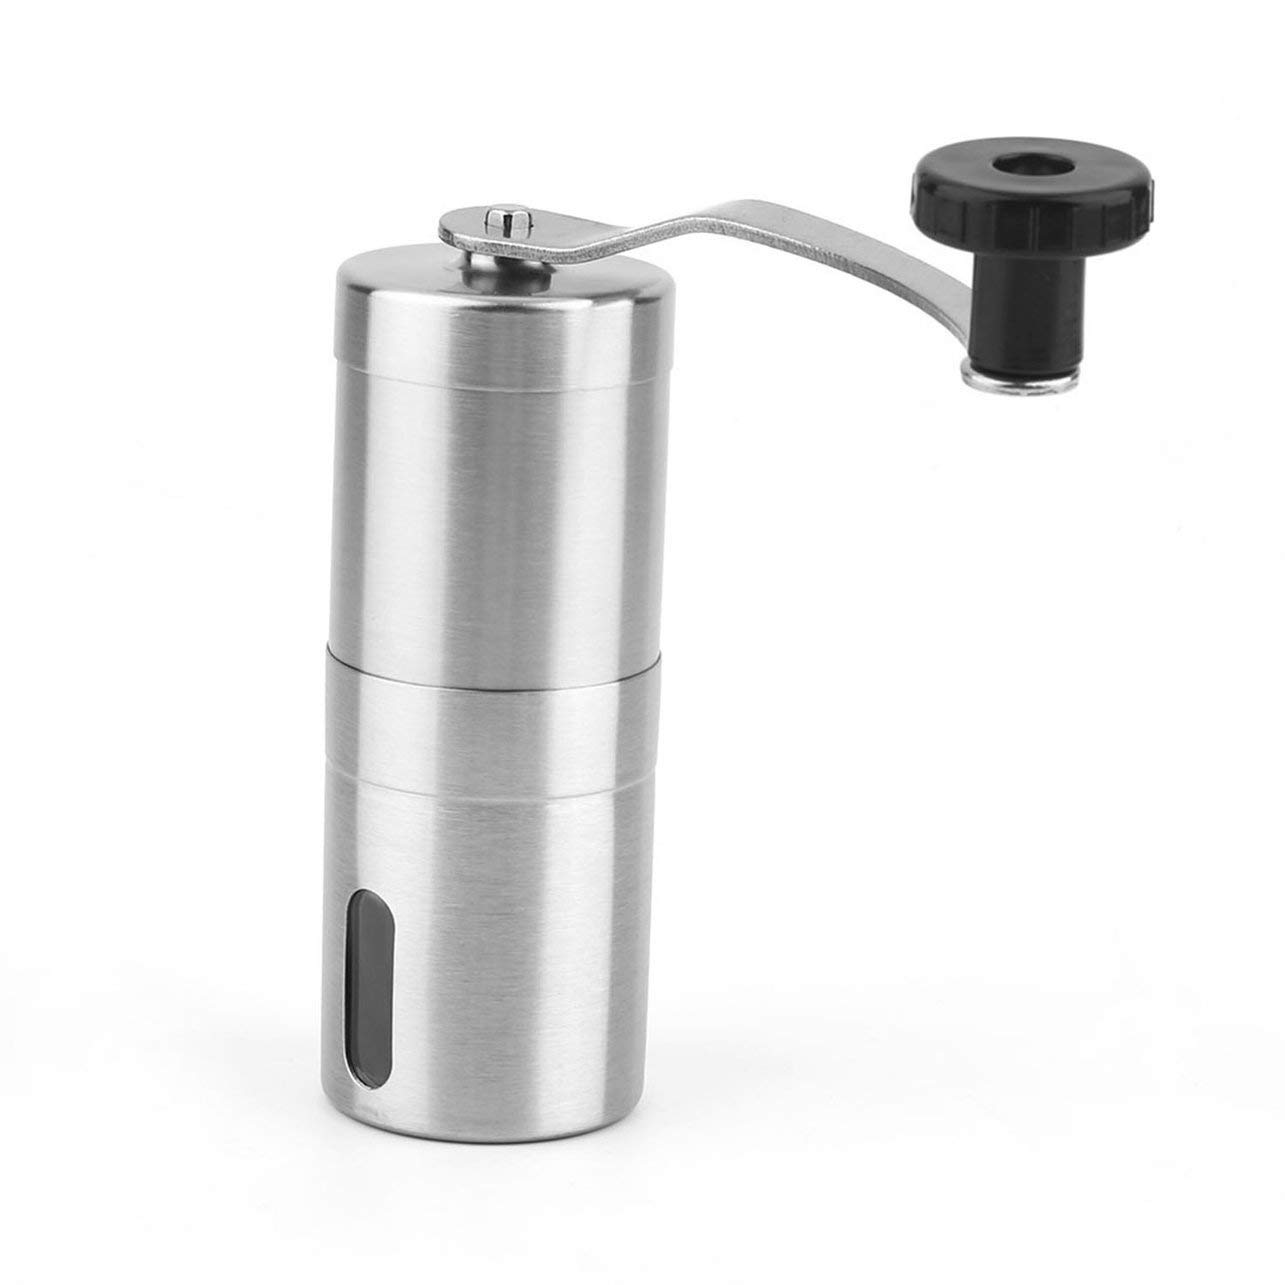 Practical Coffee Bean Grinder Stainless Steel Hand Manual Handmade Grinder Mill Kitchen Grinding Tool(Color:silver)